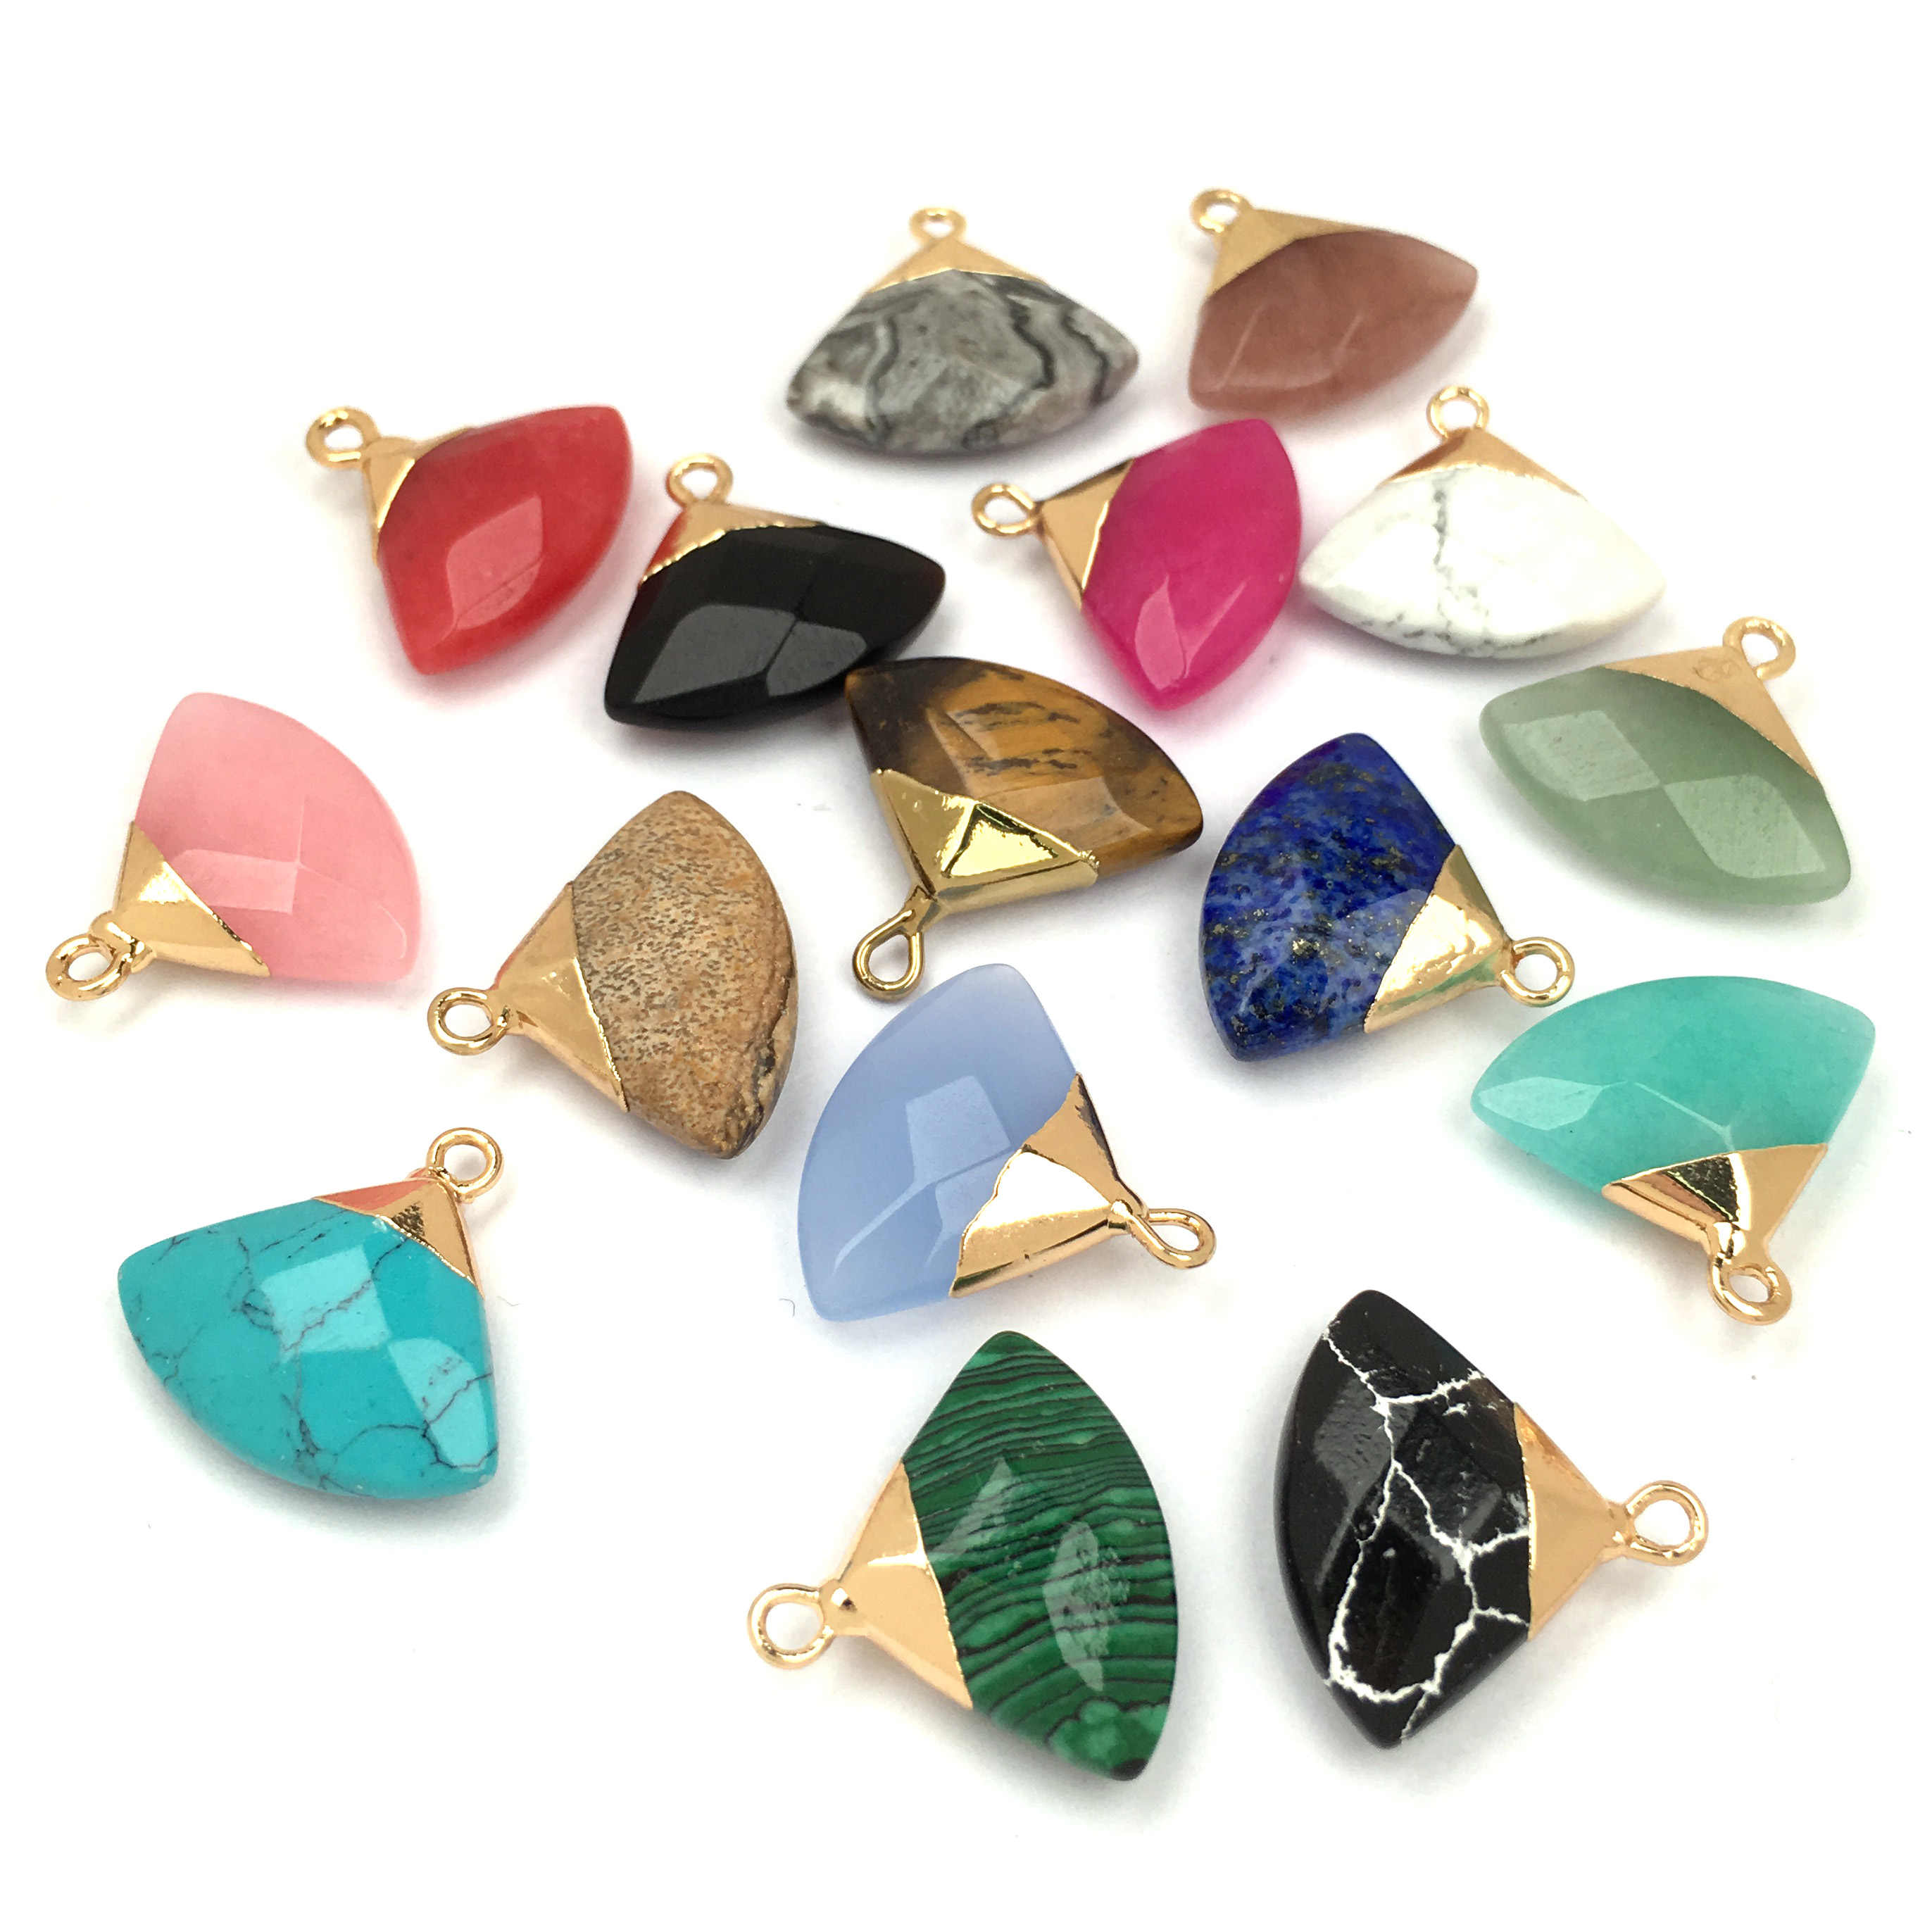 Natural Stone Crystal Pendant charm Fan Shape Pendants for Jewelry Making Supplies DIY Fine necklace accessories